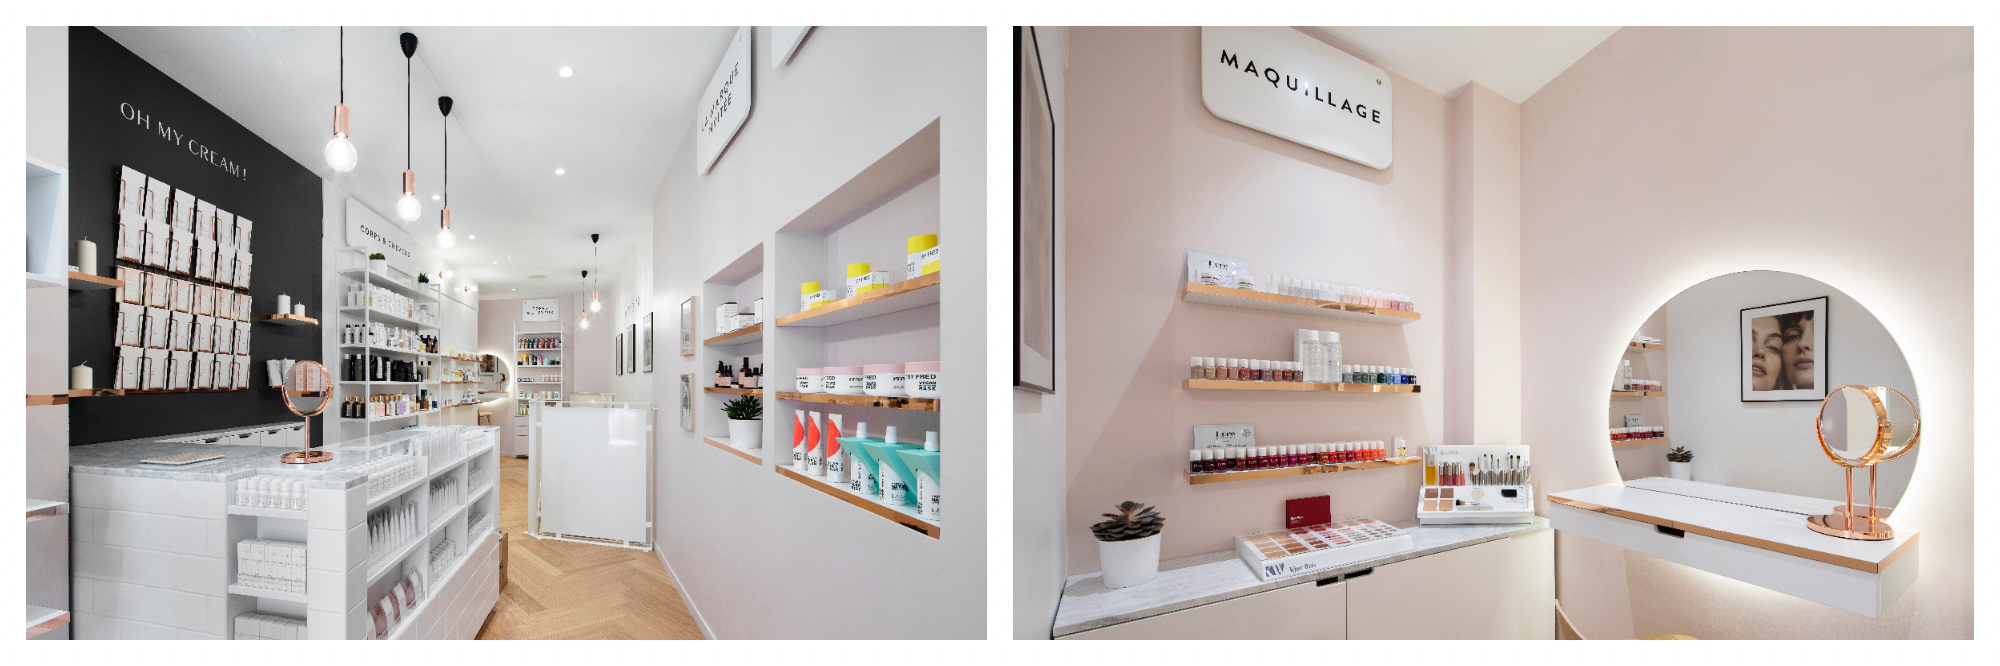 On the left there is a photo of the interior of Oh My Cream's cheerful shop which has light walls, parquet floors, one black accent wall and accents of the brands packaging in pastel pink, yellow, and turqoise neatly displayed throughout the store. On the right is a close up of the make-up section of their store which is a small alcove with mirrors, light pink walls and a white accent wall, along with a display of very small colourful jars.